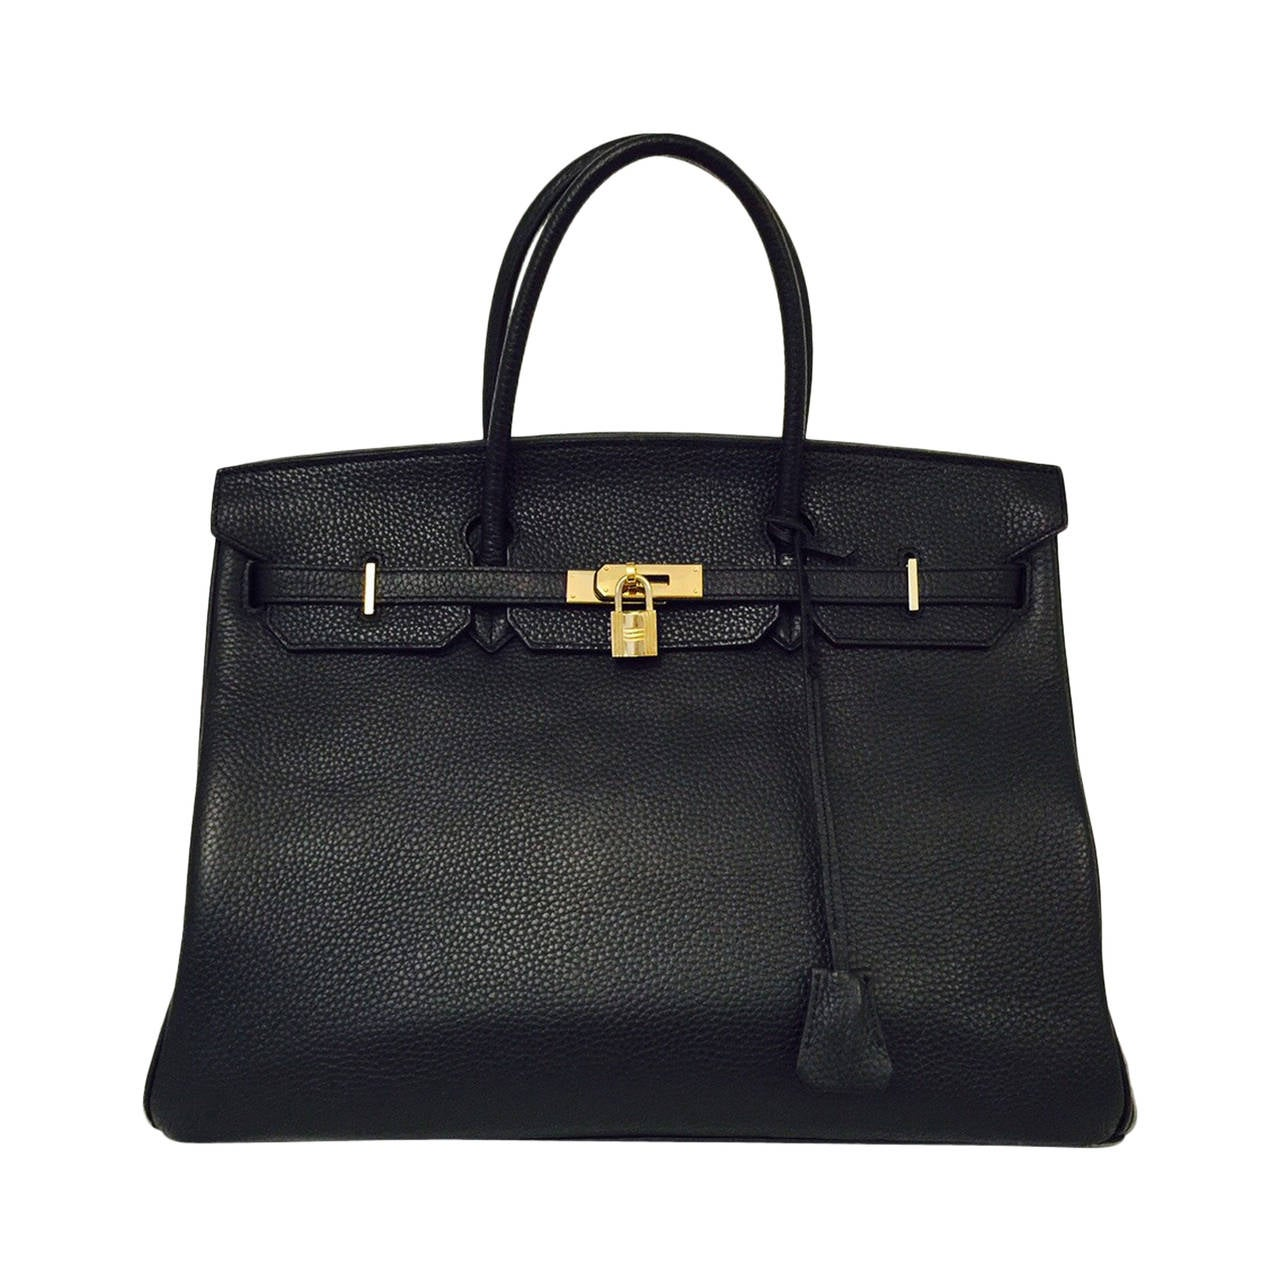 2010 Hermès Black Birkin Togo 40 With Gold Hardware 1